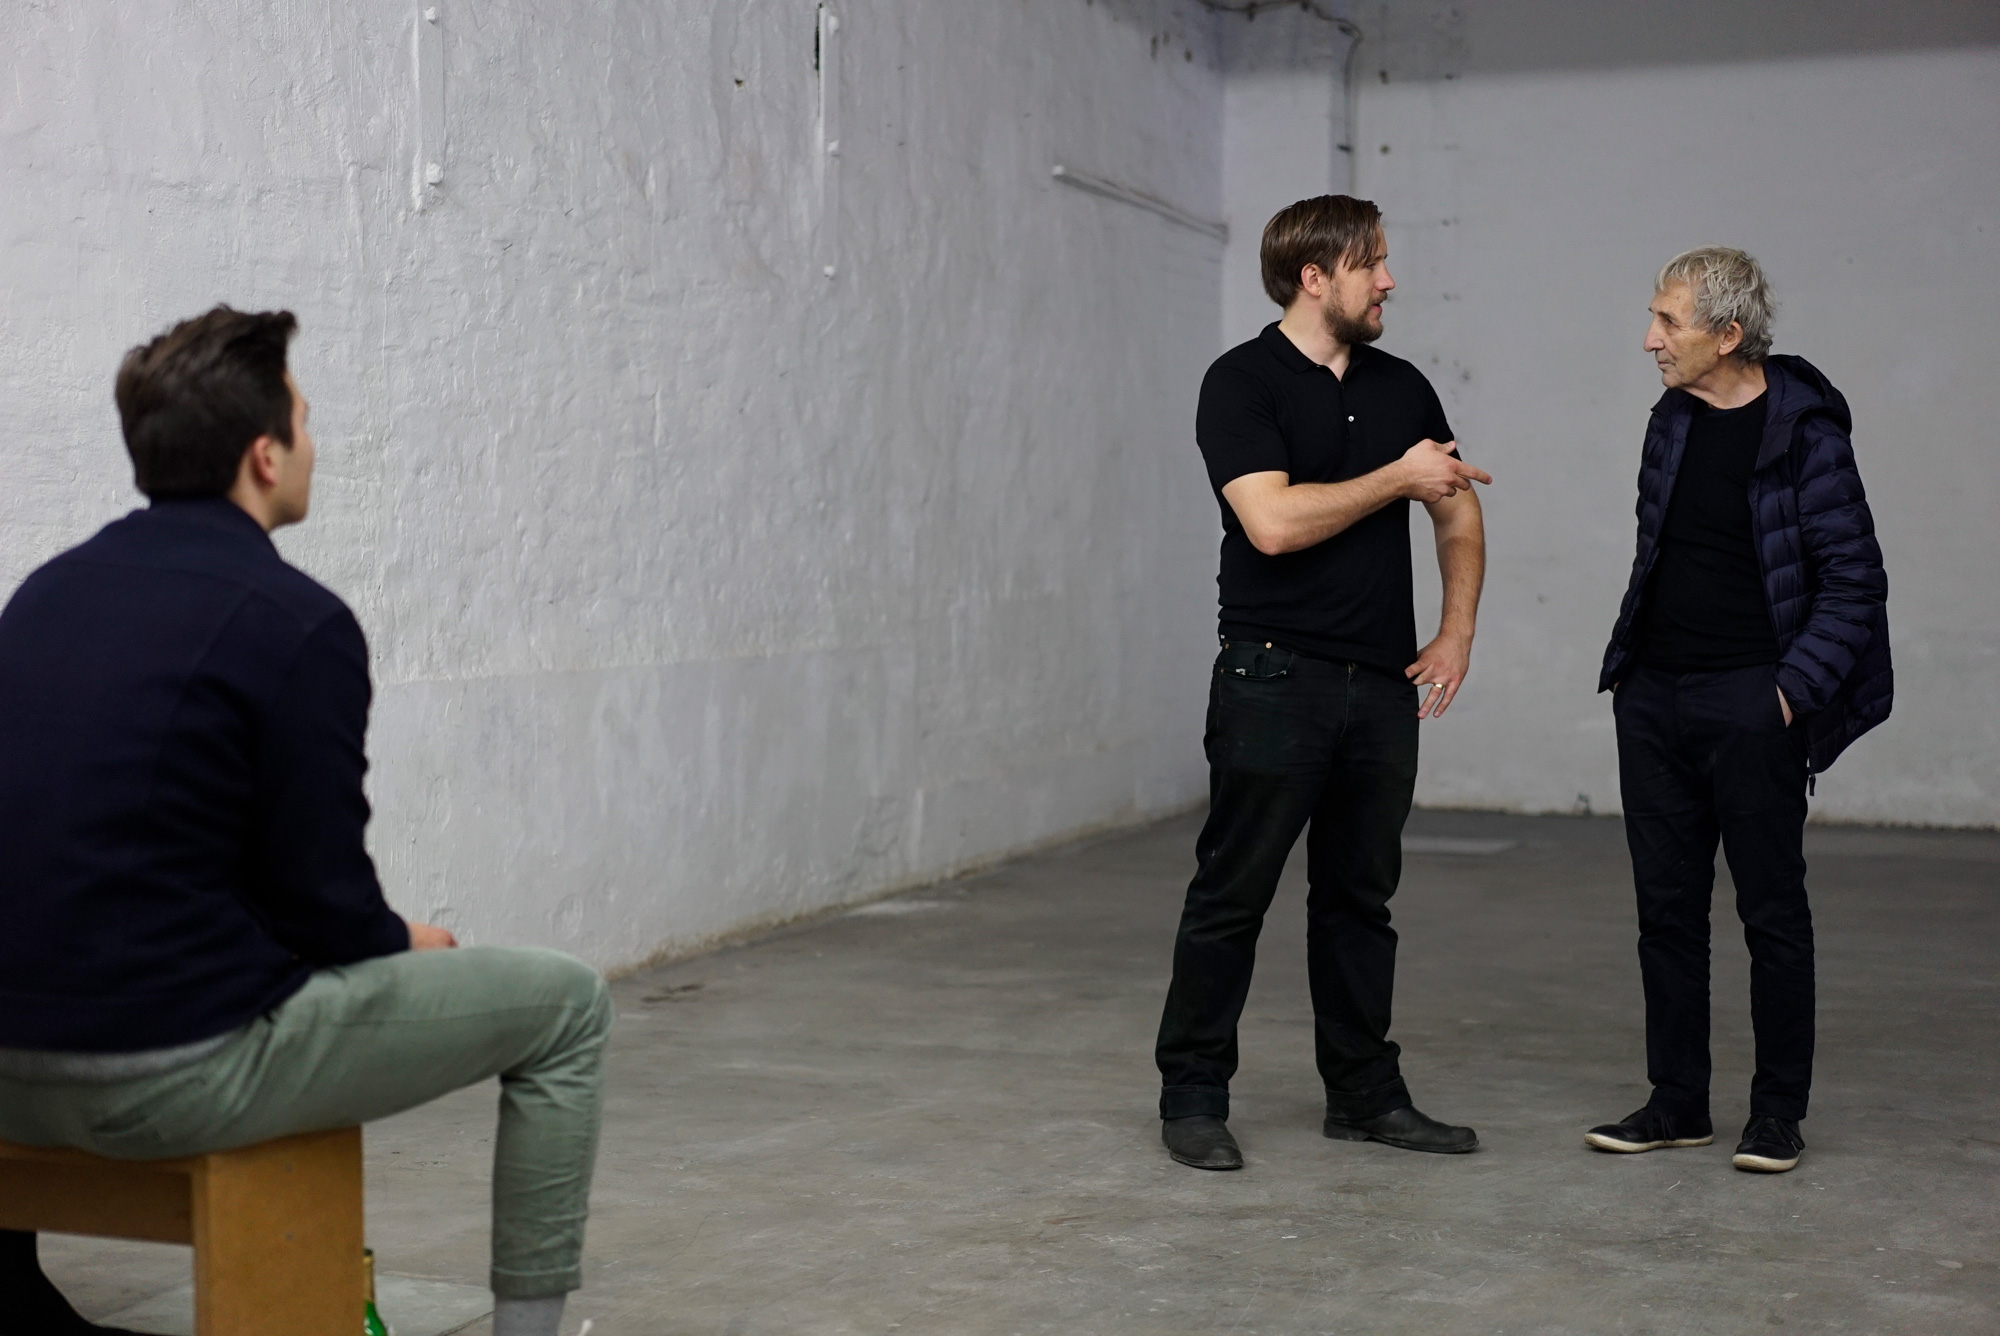 THE STORY OF GEORGE MACIUNAS AND FLUXUS by JEFFREY PERKINS - Stephan Machac mit Gespräch mit Jeffrey Perkins - 27.09.2019 Studio For Artistic Research Jeffrey Perkins Düsseldorf